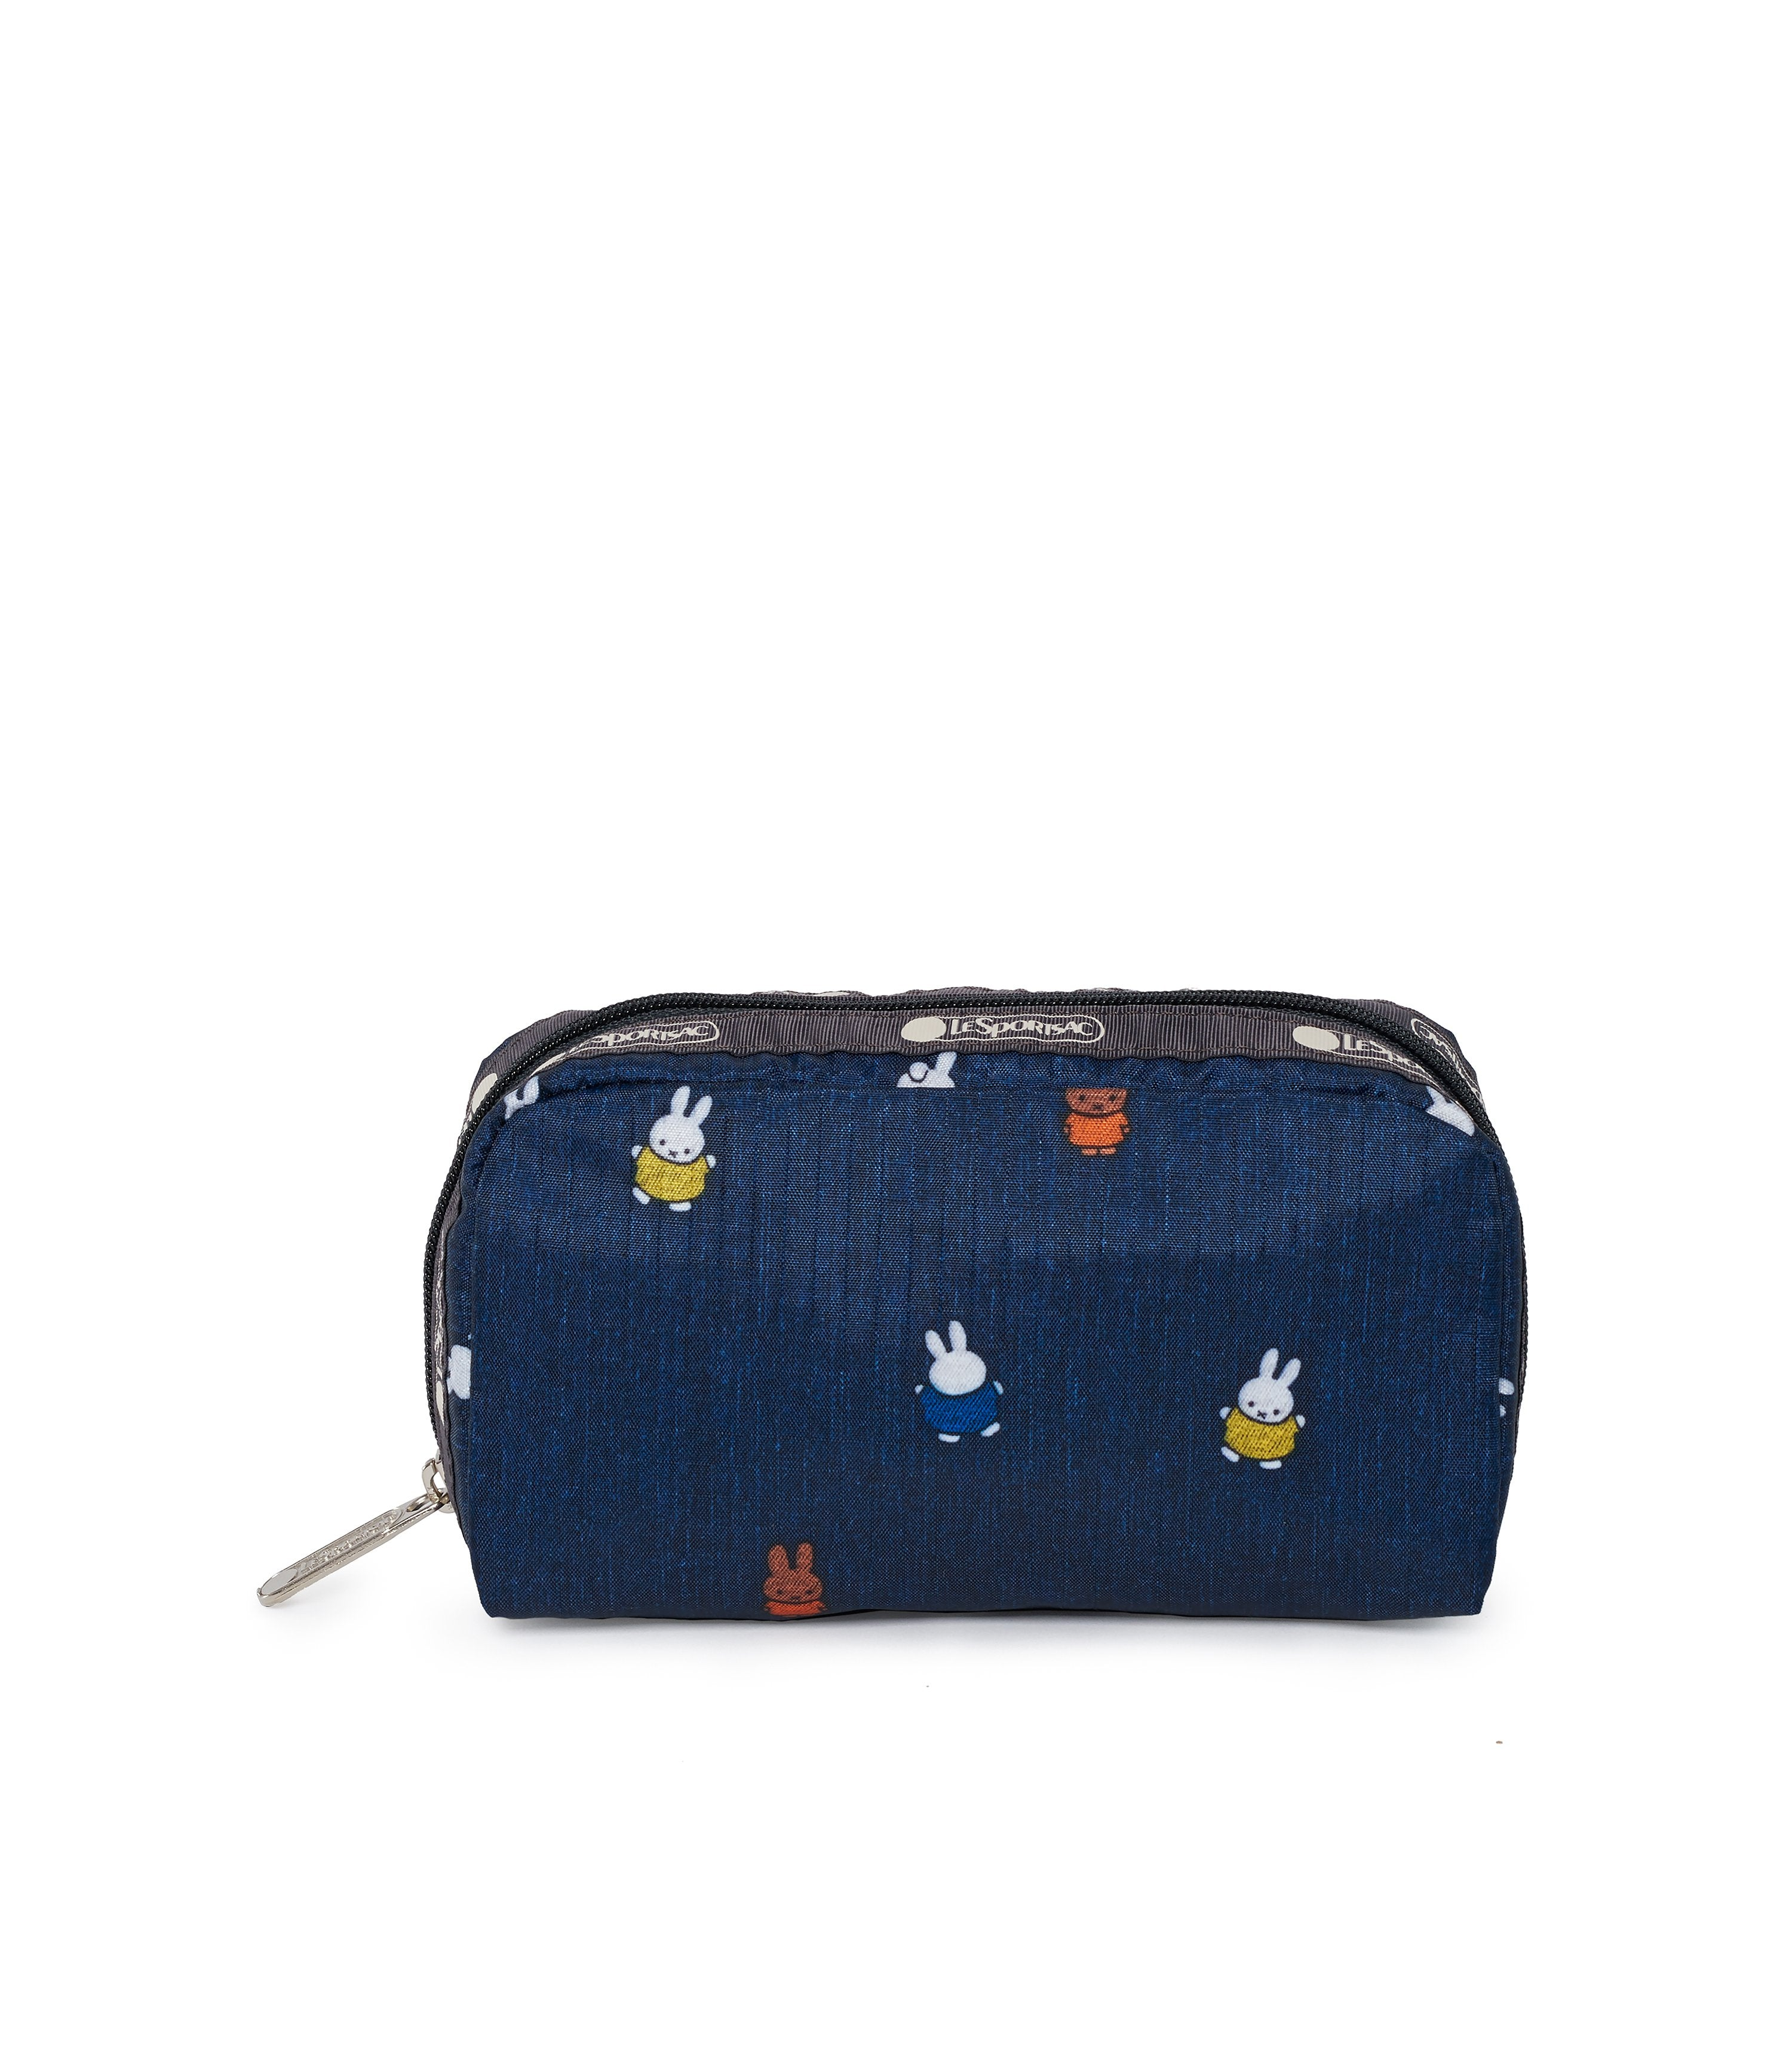 Dick Bruna - LeSportsac Rectangular Cosmetic - Accessory - Miffy and Friends - Navy -  Front View